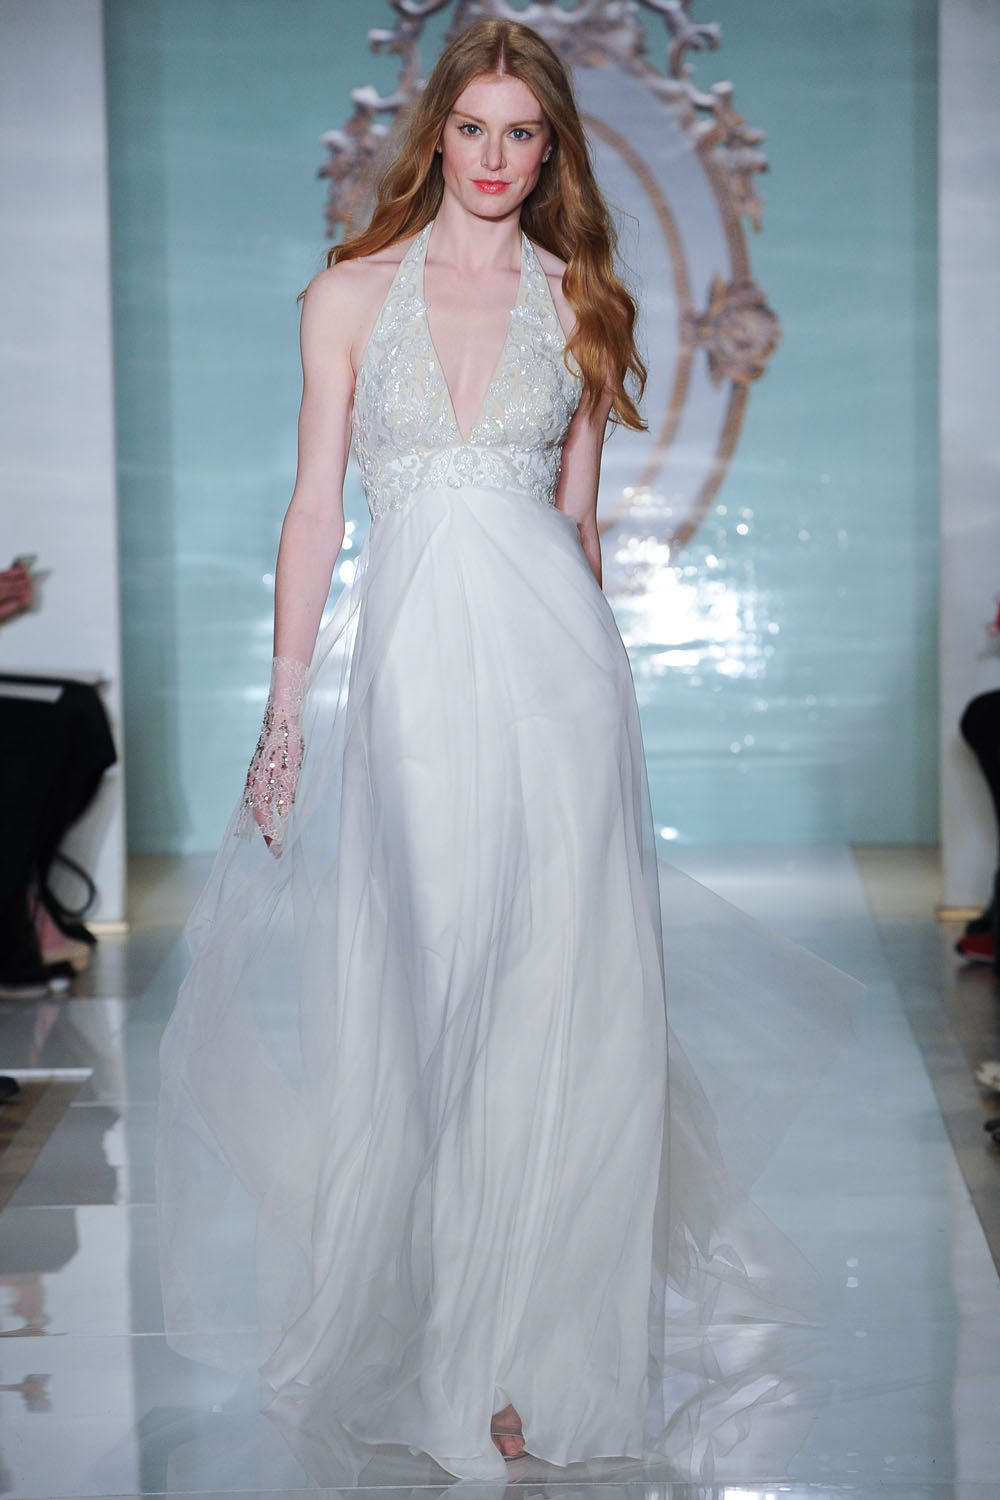 Nice Rustic Chic Wedding Dress Image Collection - Wedding Dress ...